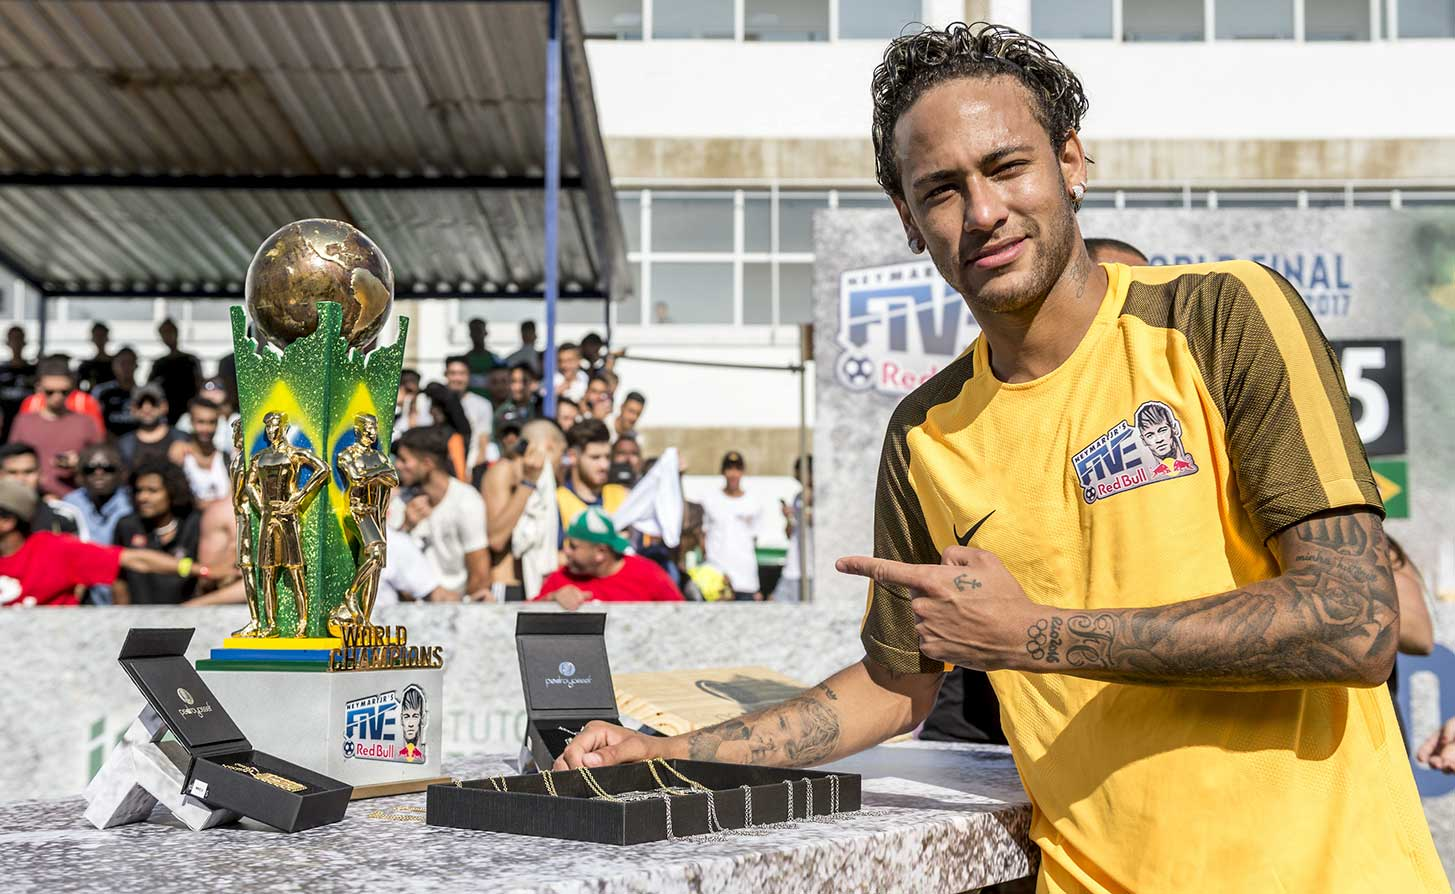 Neymar Jr's Five World Final Brazil